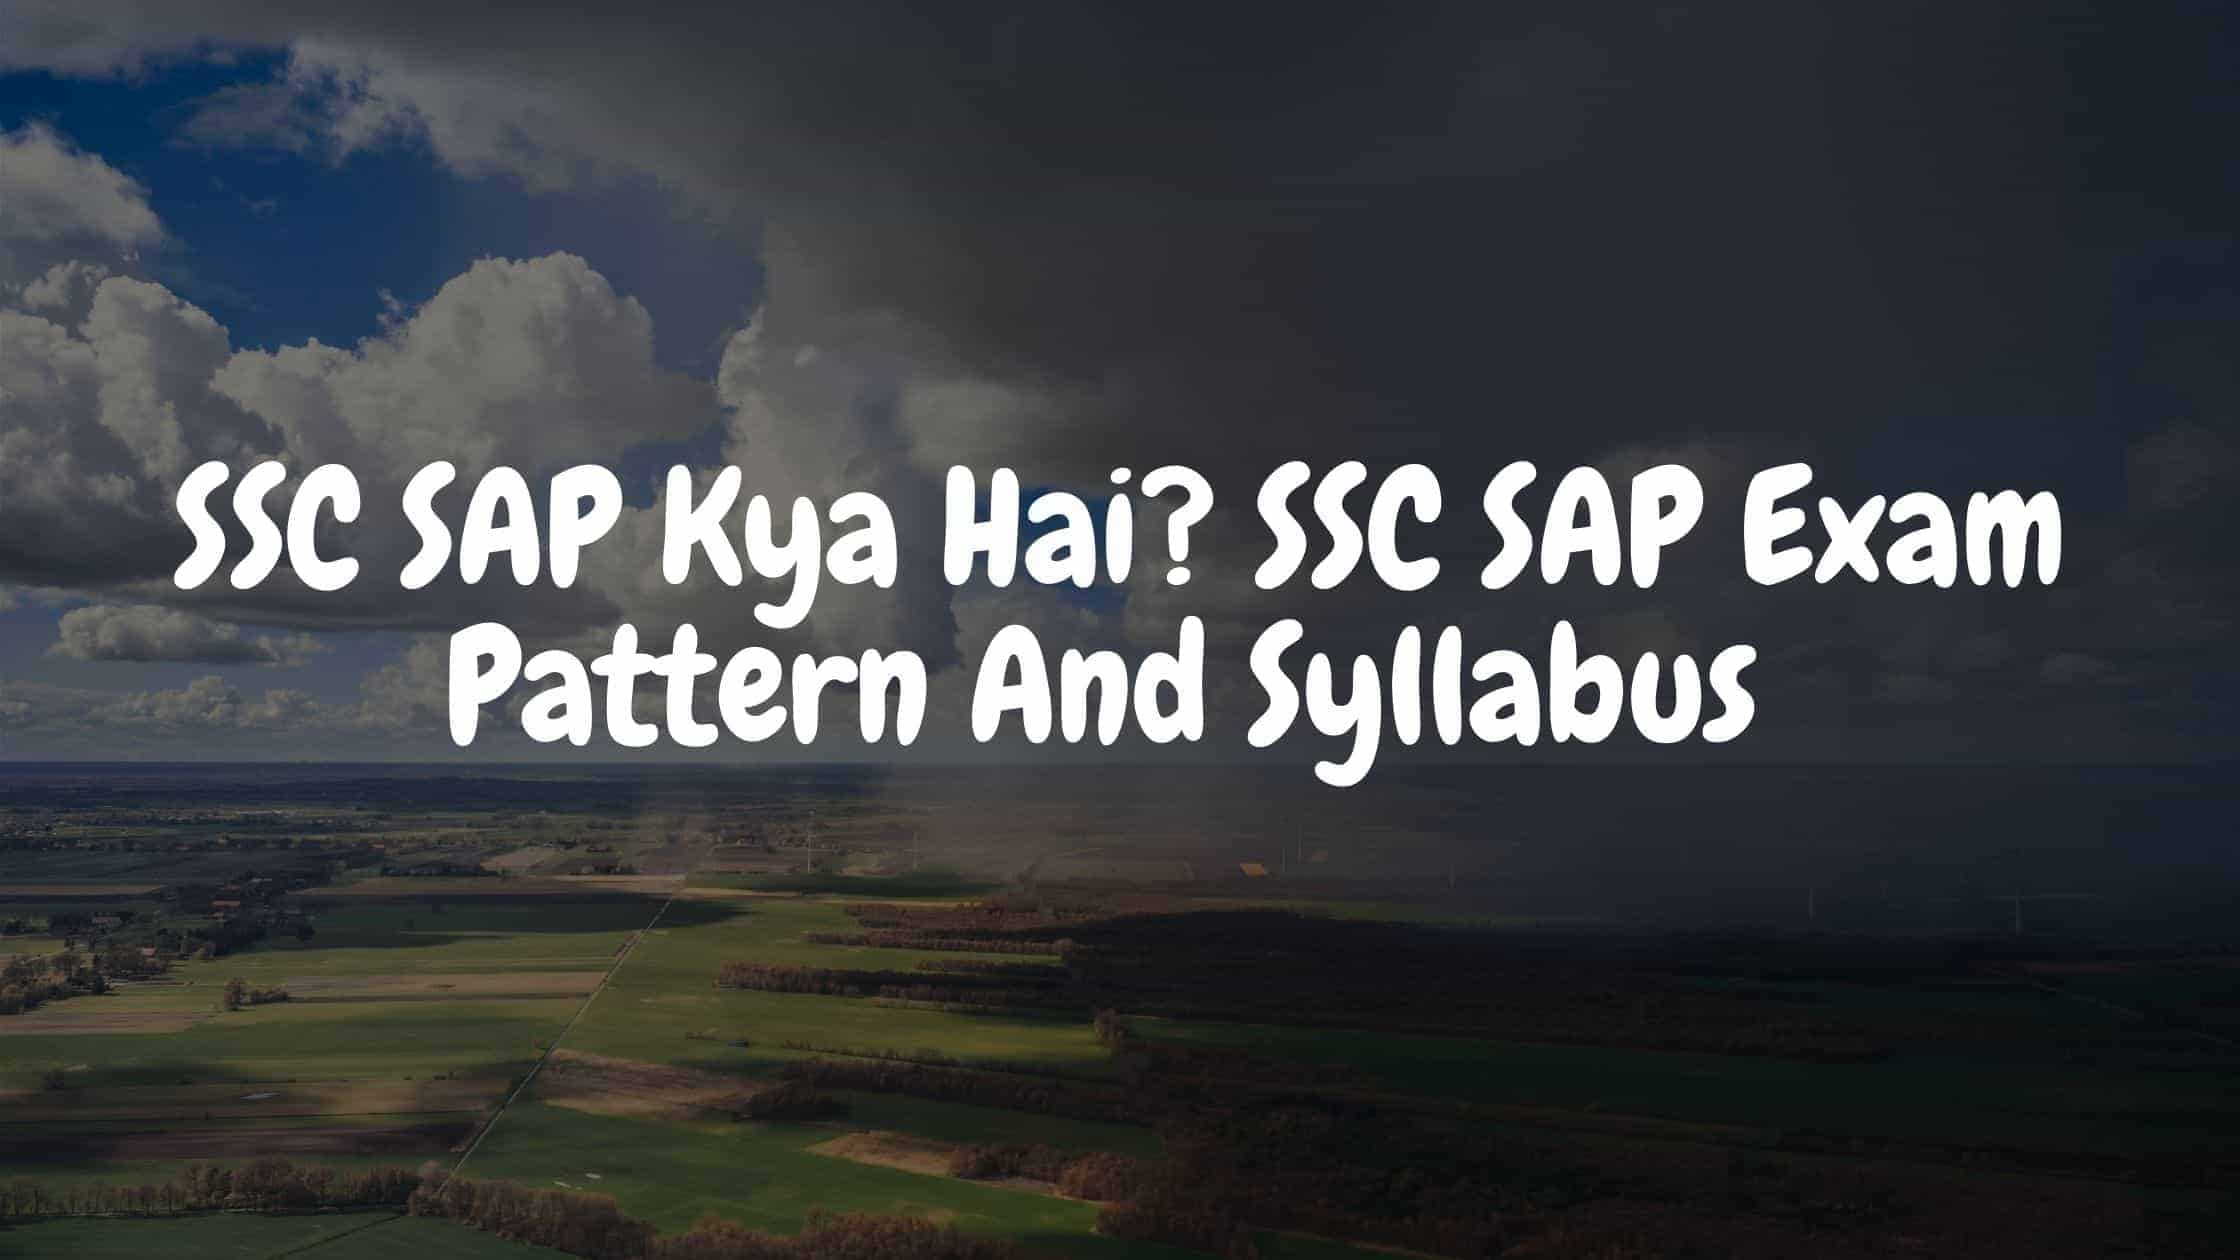 SSC SAP Kya Hai? SSC SAP Exam Pattern And Syllabus